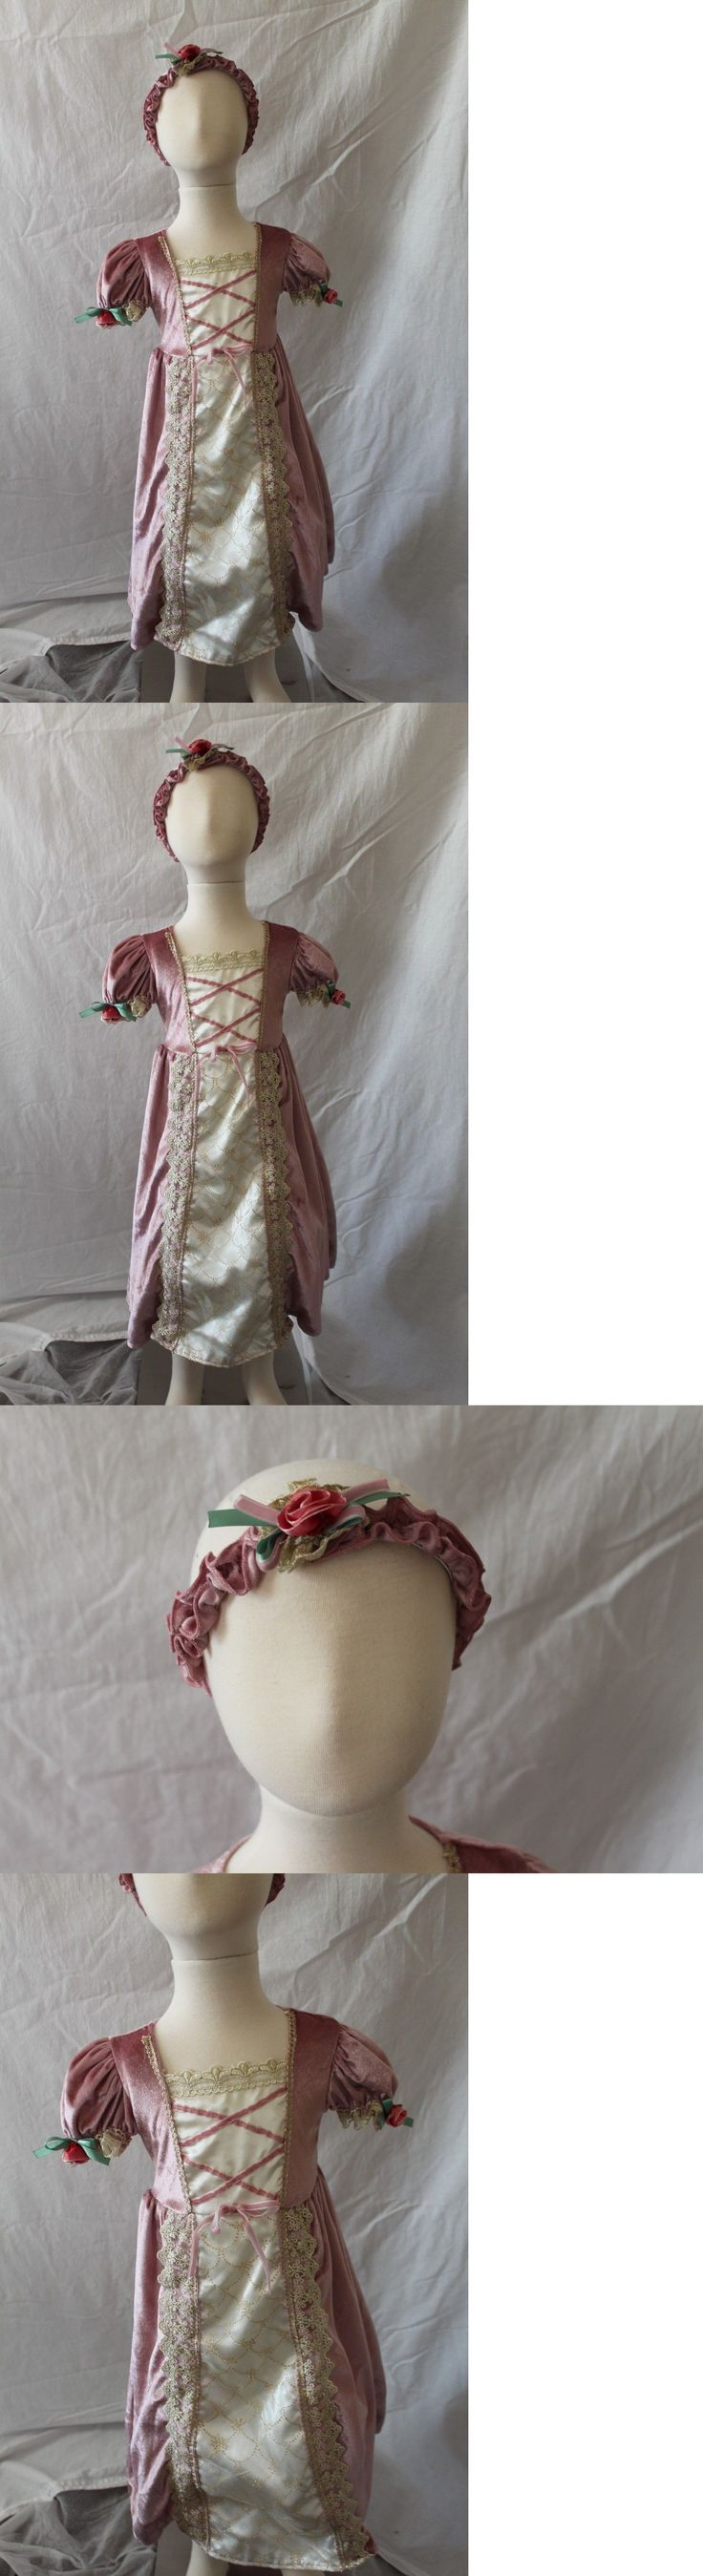 Kids Costumes: Renaissance Princess Lady Rose Toddler Girls Costume 2T Dress Headband New BUY IT NOW ONLY: $36.88